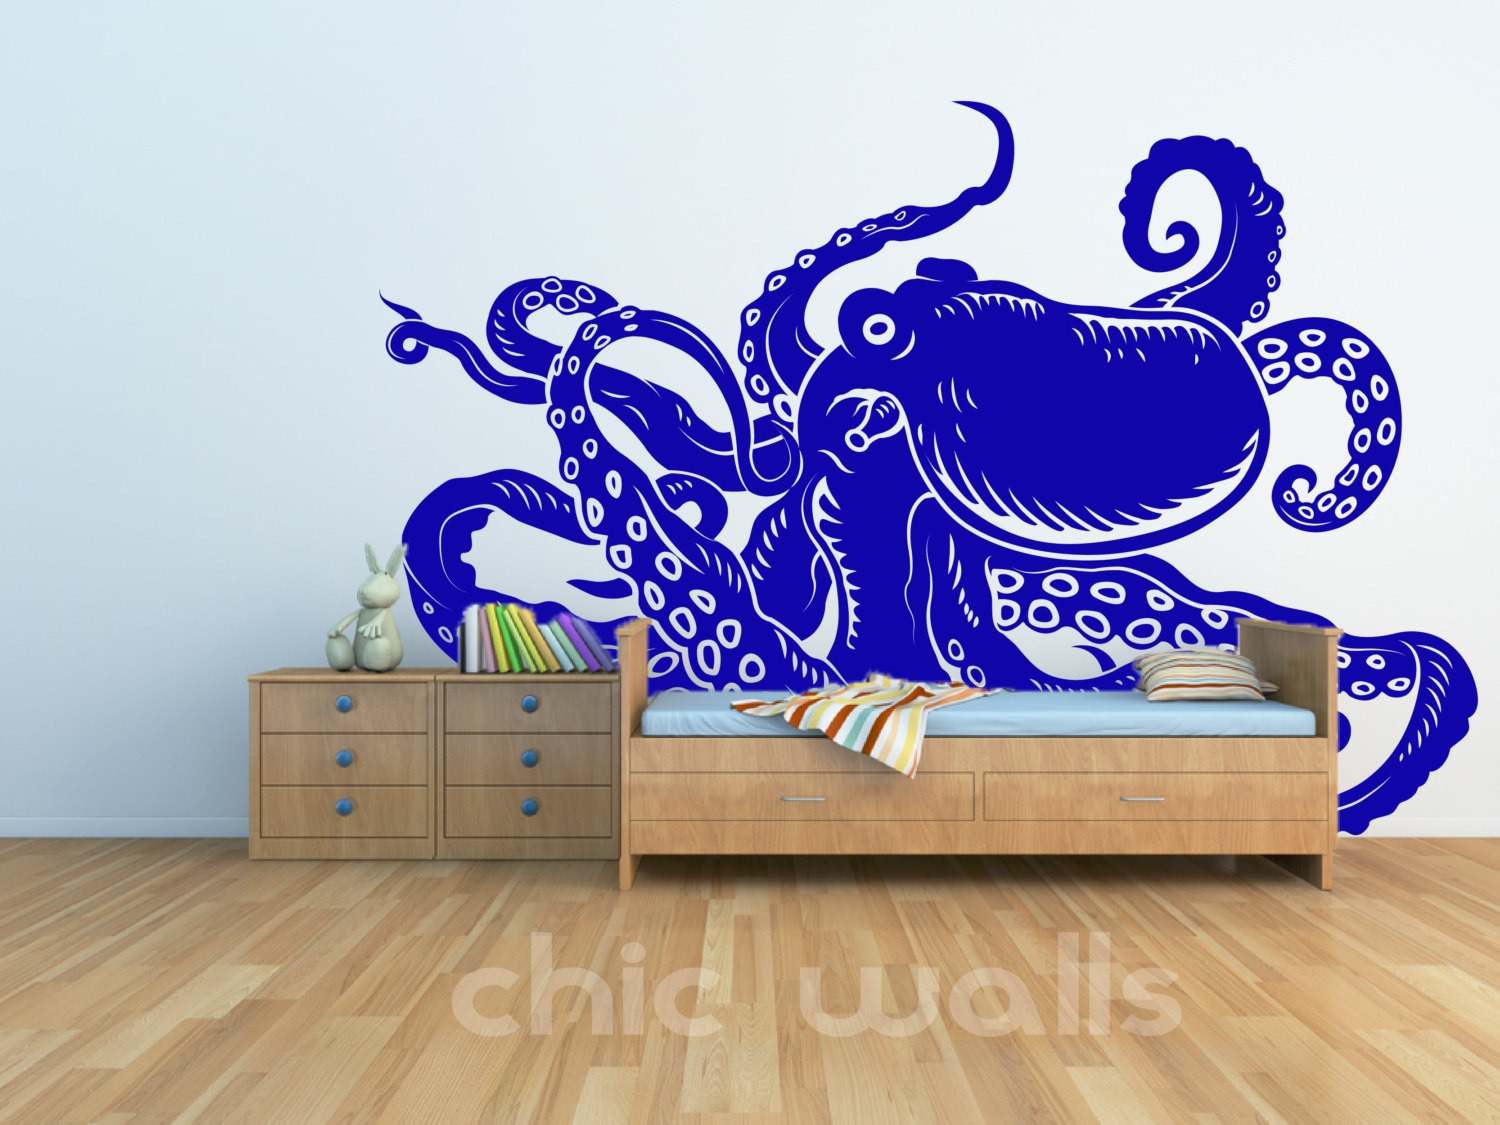 removable octopus wall glass refrigerator art decor decal. Black Bedroom Furniture Sets. Home Design Ideas